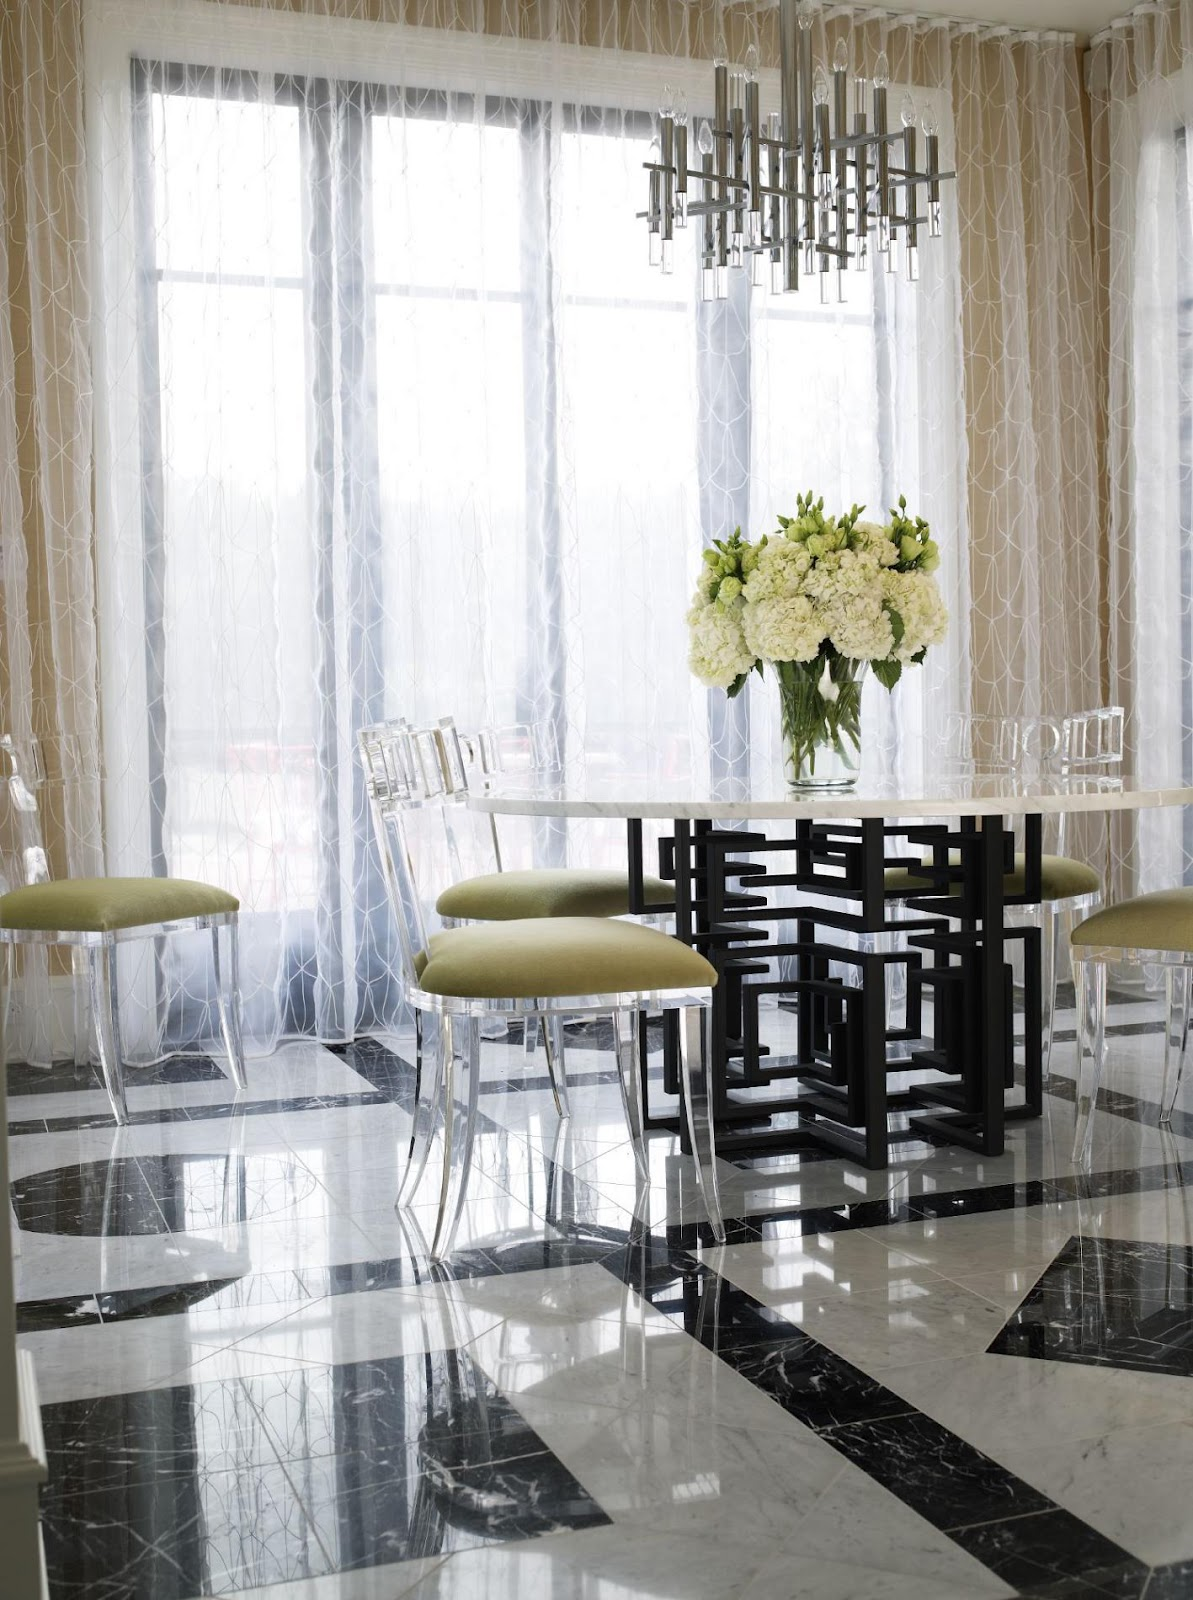 Acrylic Chair Black White Color Scheme Dining Room Bathroom Kitchen